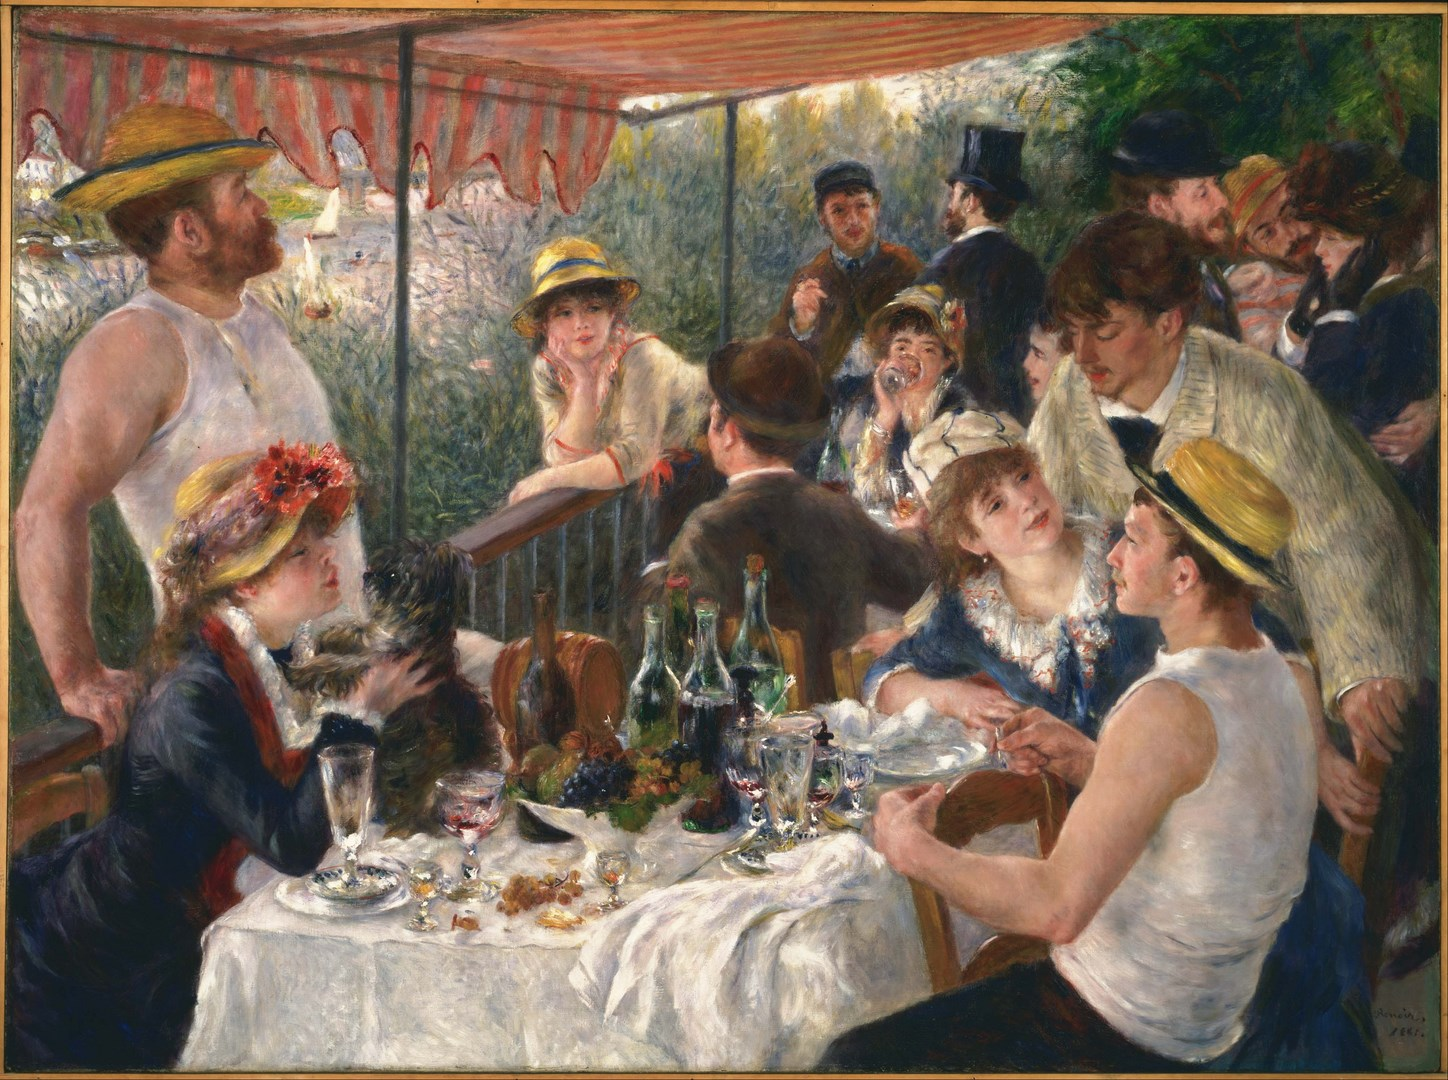 Pierre-Auguste_Renoir_-_Luncheon_of_the_Boating_Party_-_Google_Art_Project (Copier)